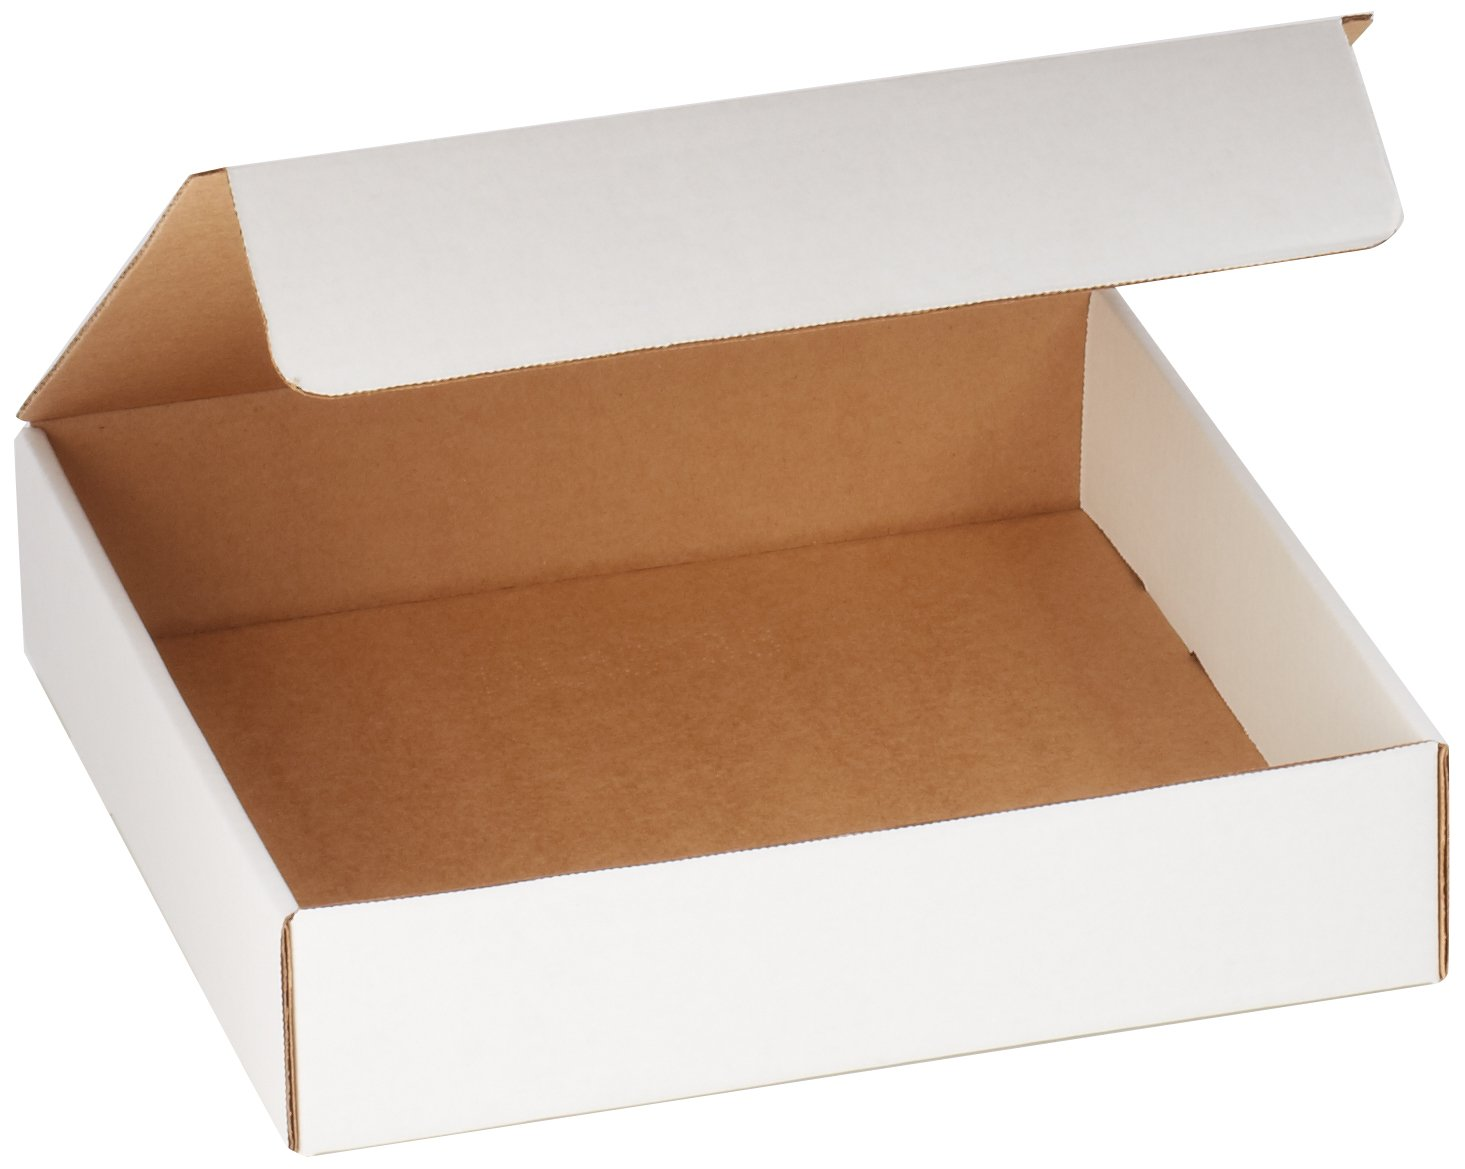 Aviditi White Literature Mailing Boxes, 13 x 13 x 3 Inches, Pack of 50, Crush-Proof, for Shipping, Mailing and Storing